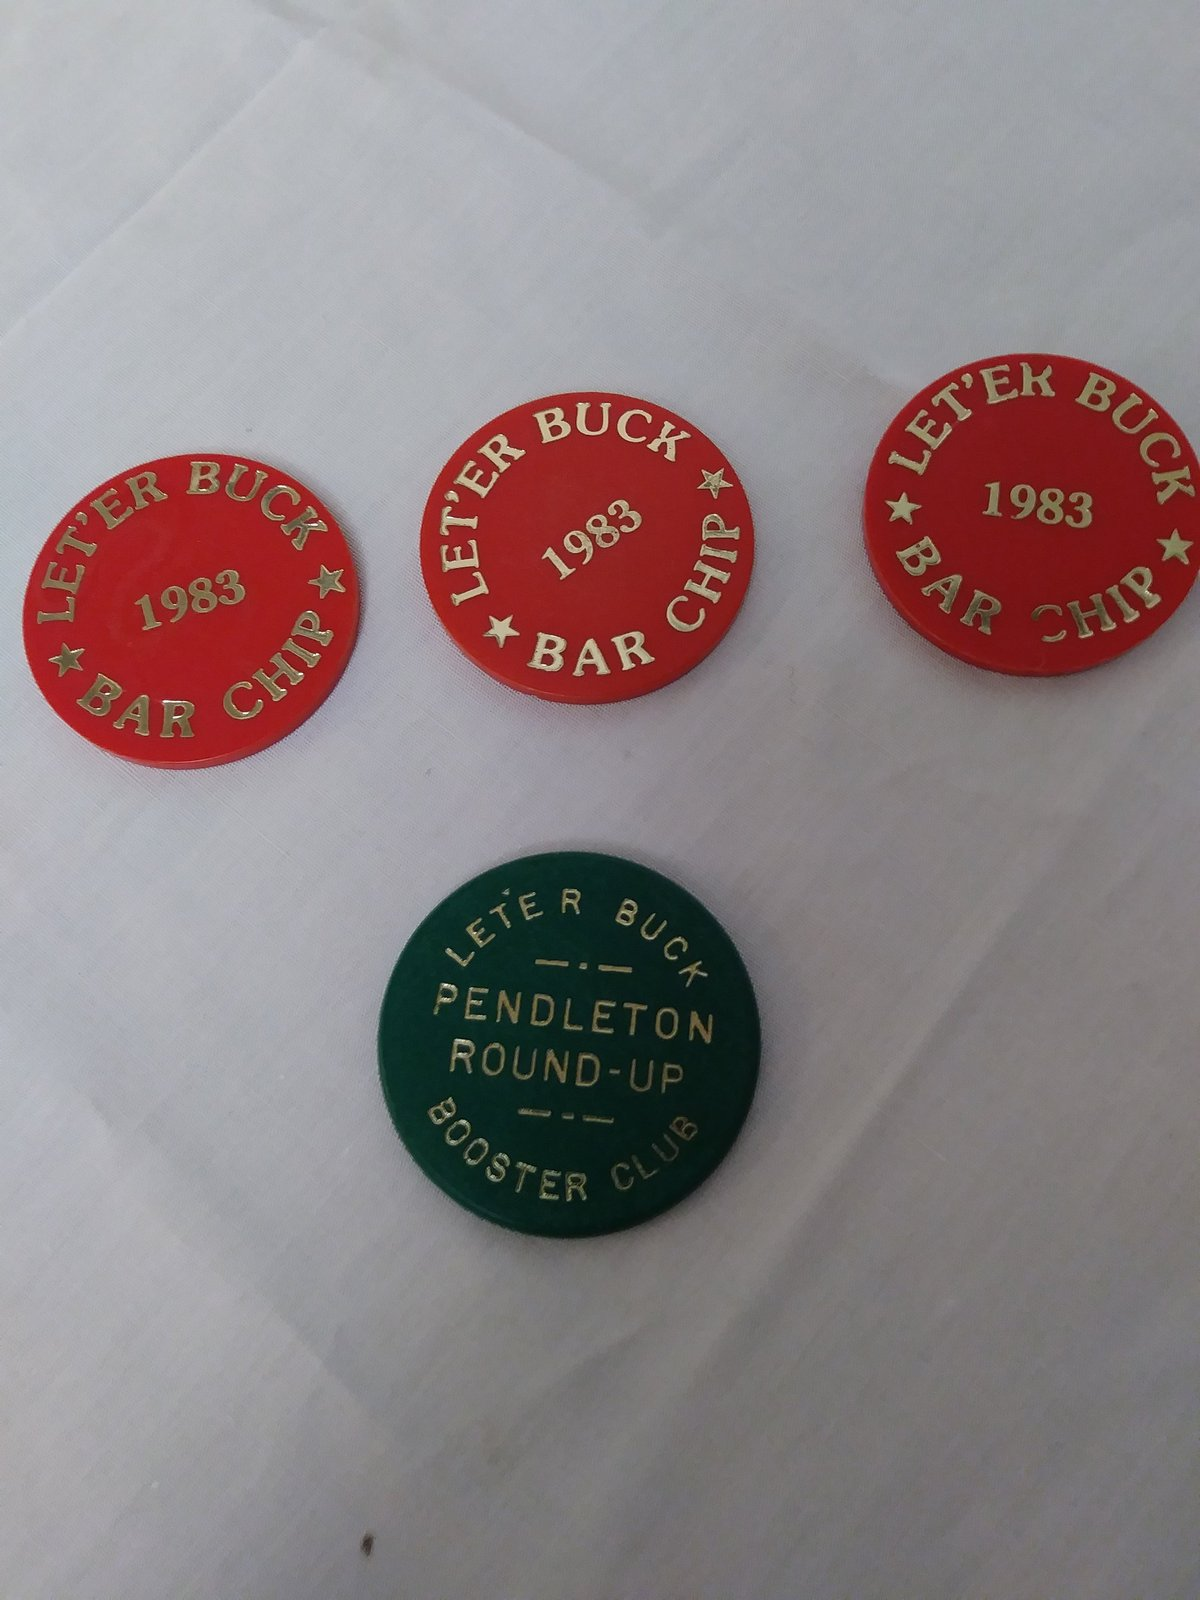 Vintage LET'ER BUCK  1983 Bar Chips Pendleton Round-Up Annual Sept. Event Bar Ch